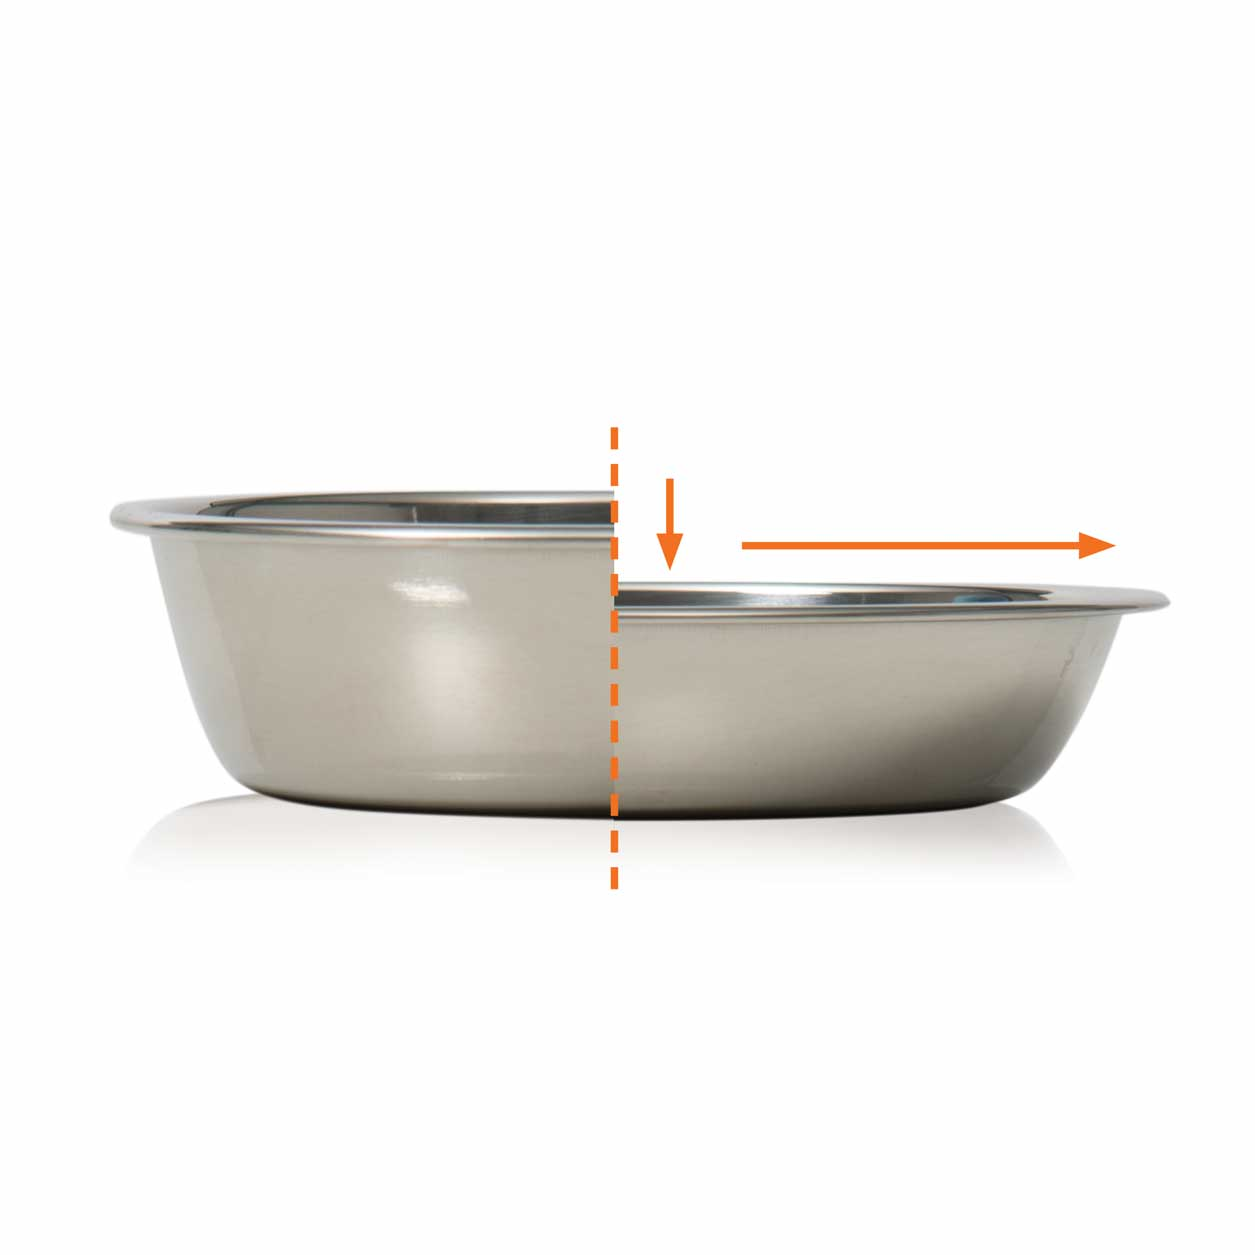 Feeding dish with shallow design